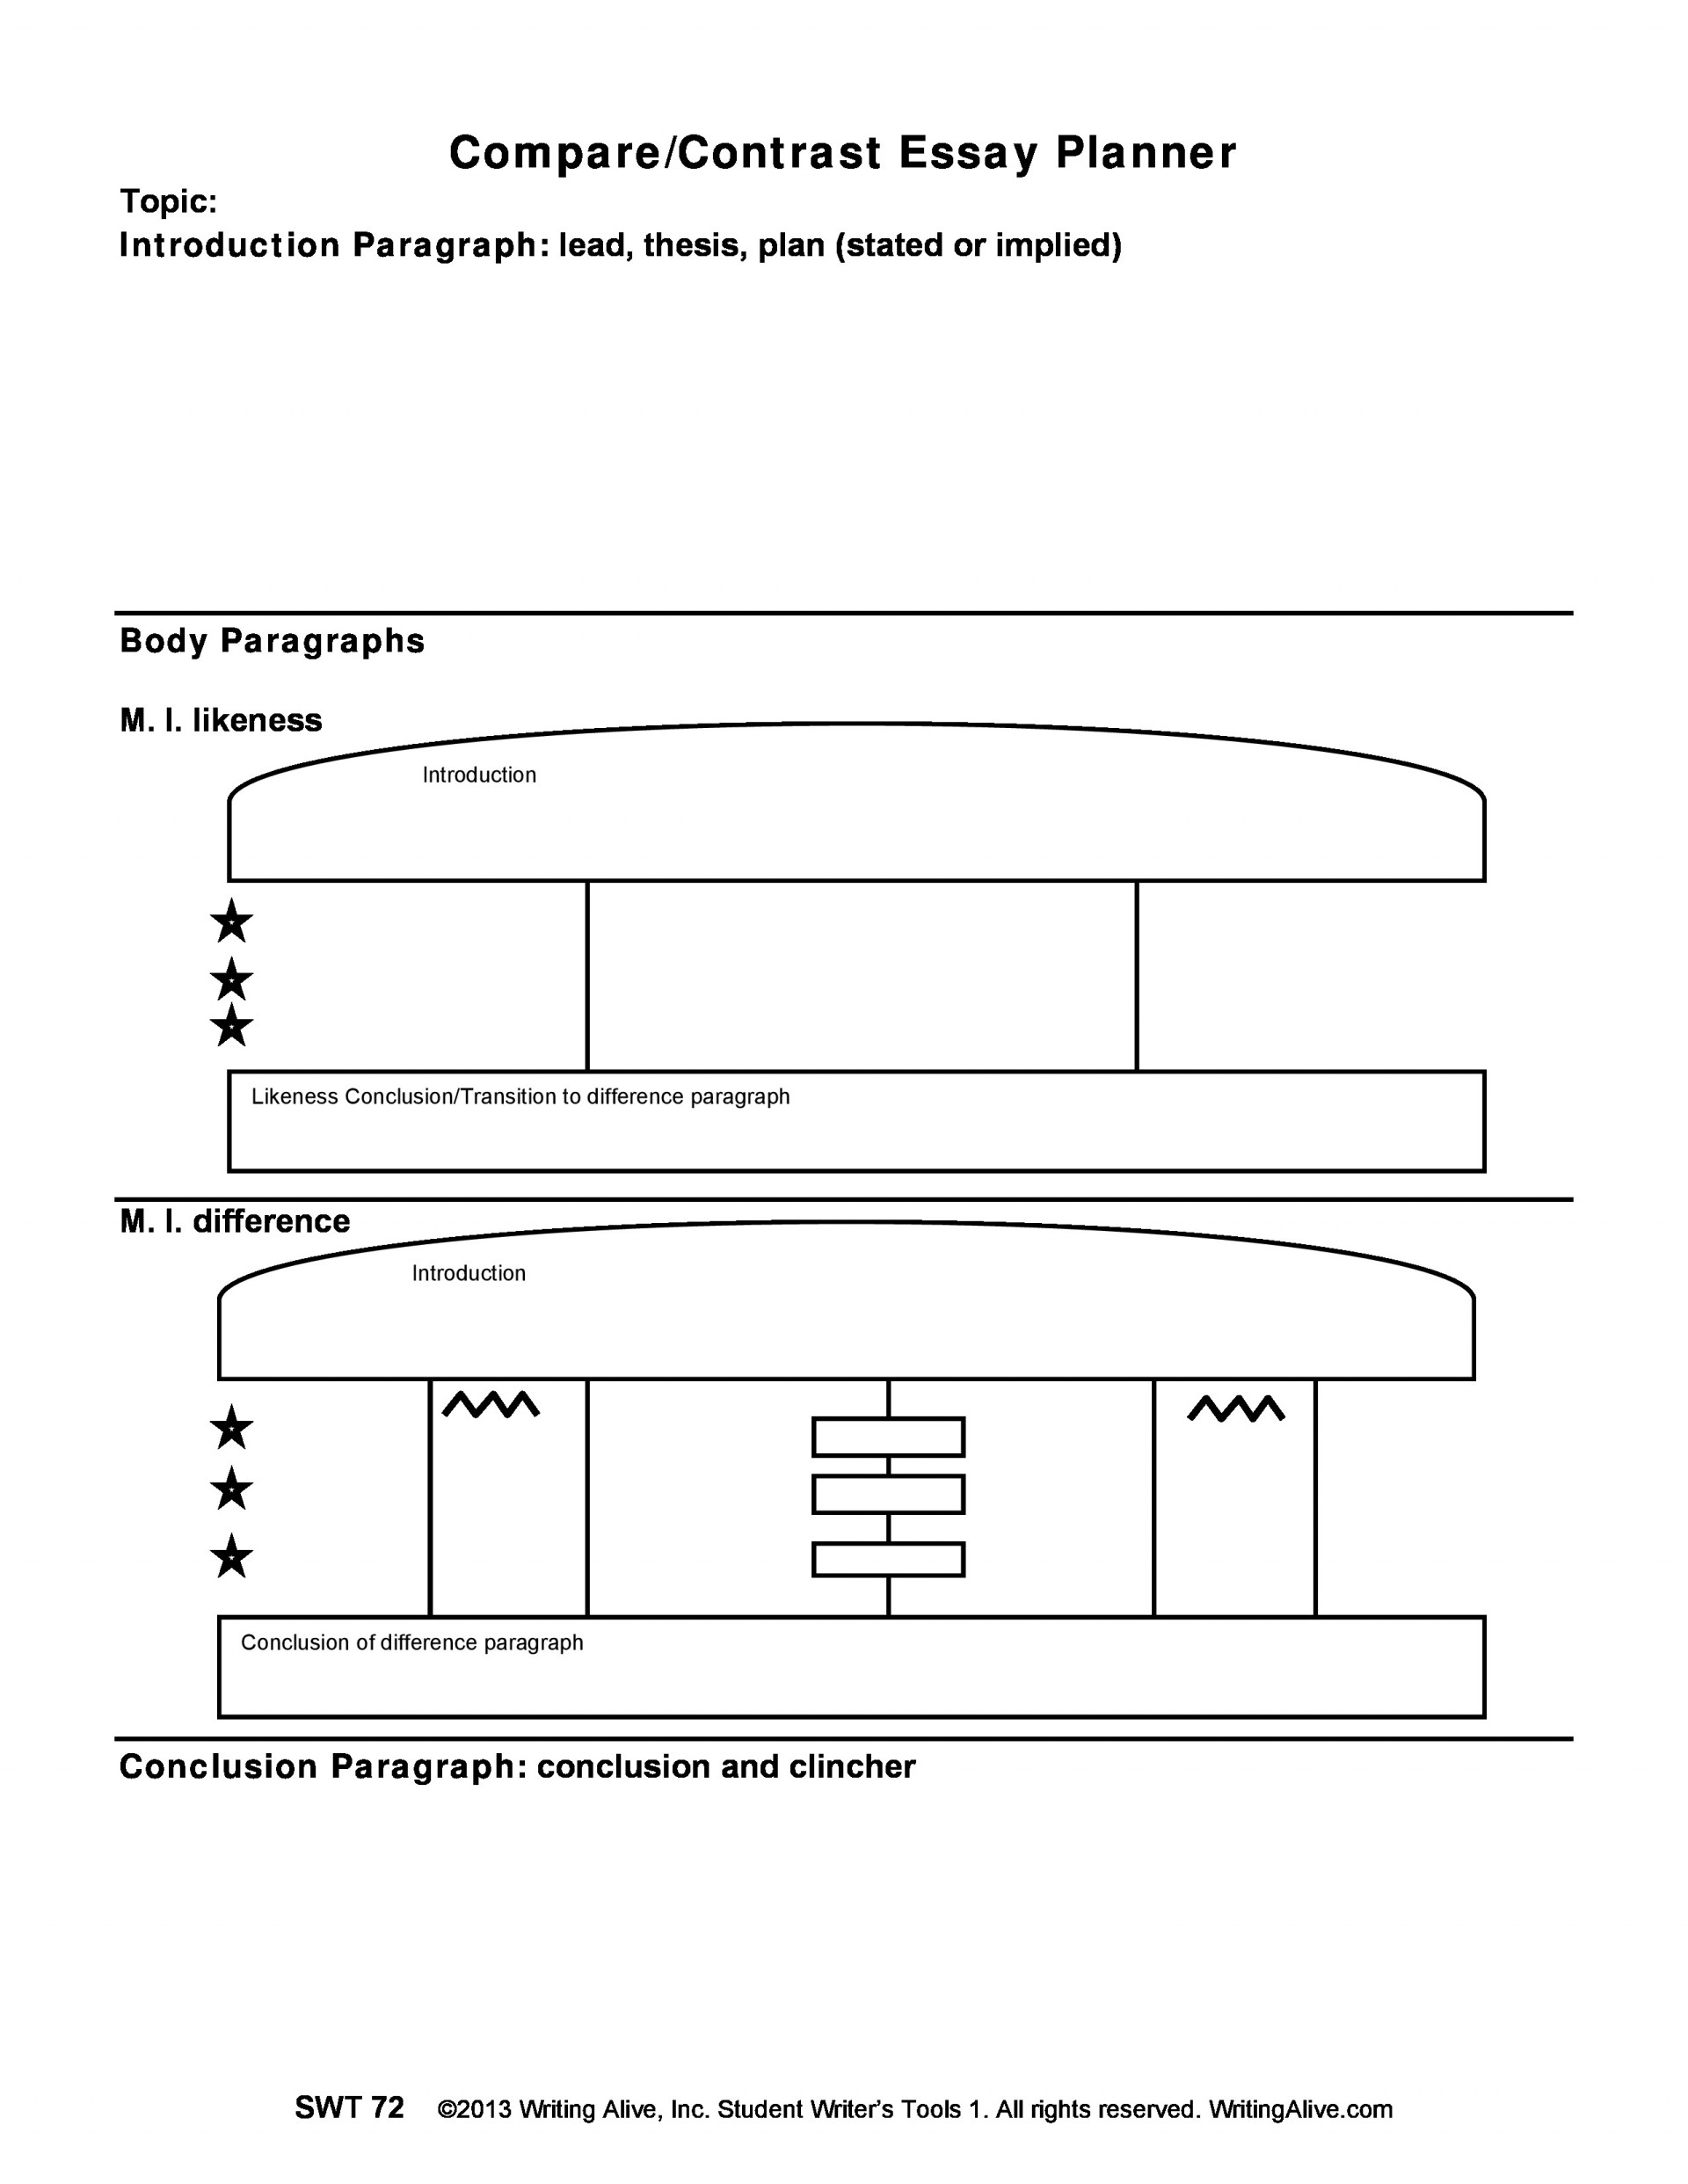 020 Ms1 Swt72 Essay Example Compare And Contrast Stupendous Structure Ppt Format Outline 1920